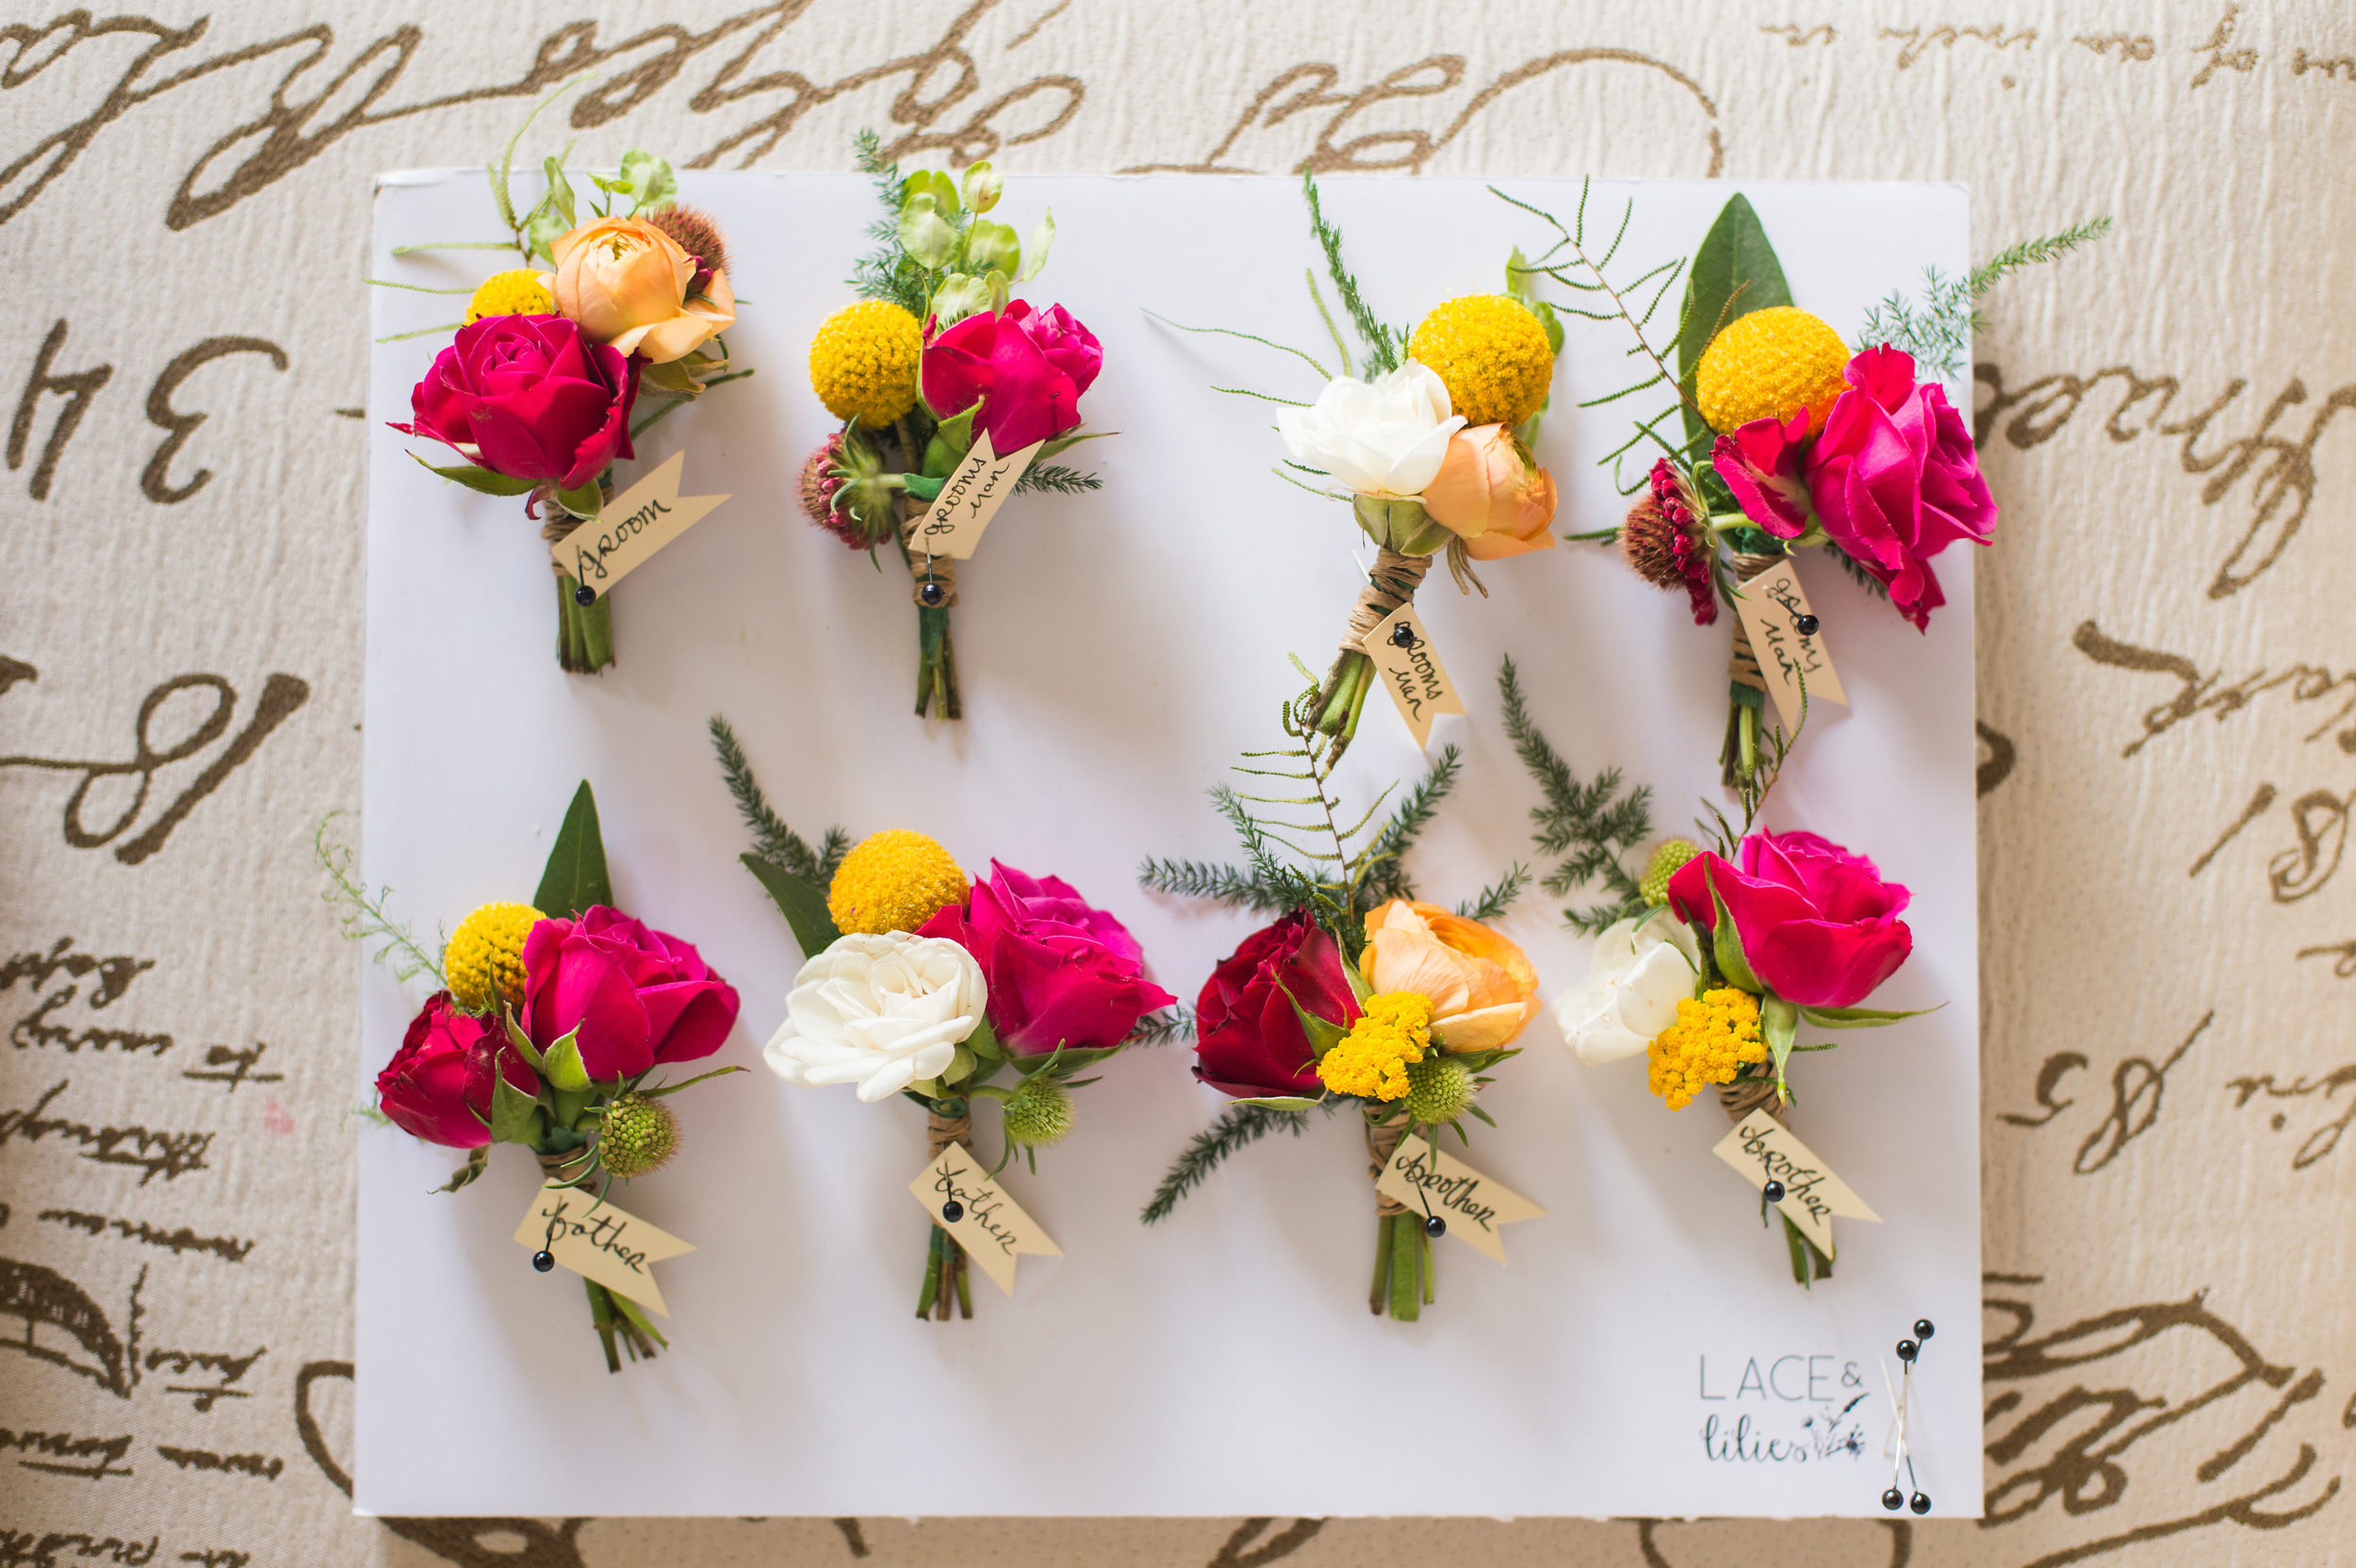 Flowers by Lace and Lilies, bright and bold summer boutonnieres, spray rose, ranunculus, fern and billy balls